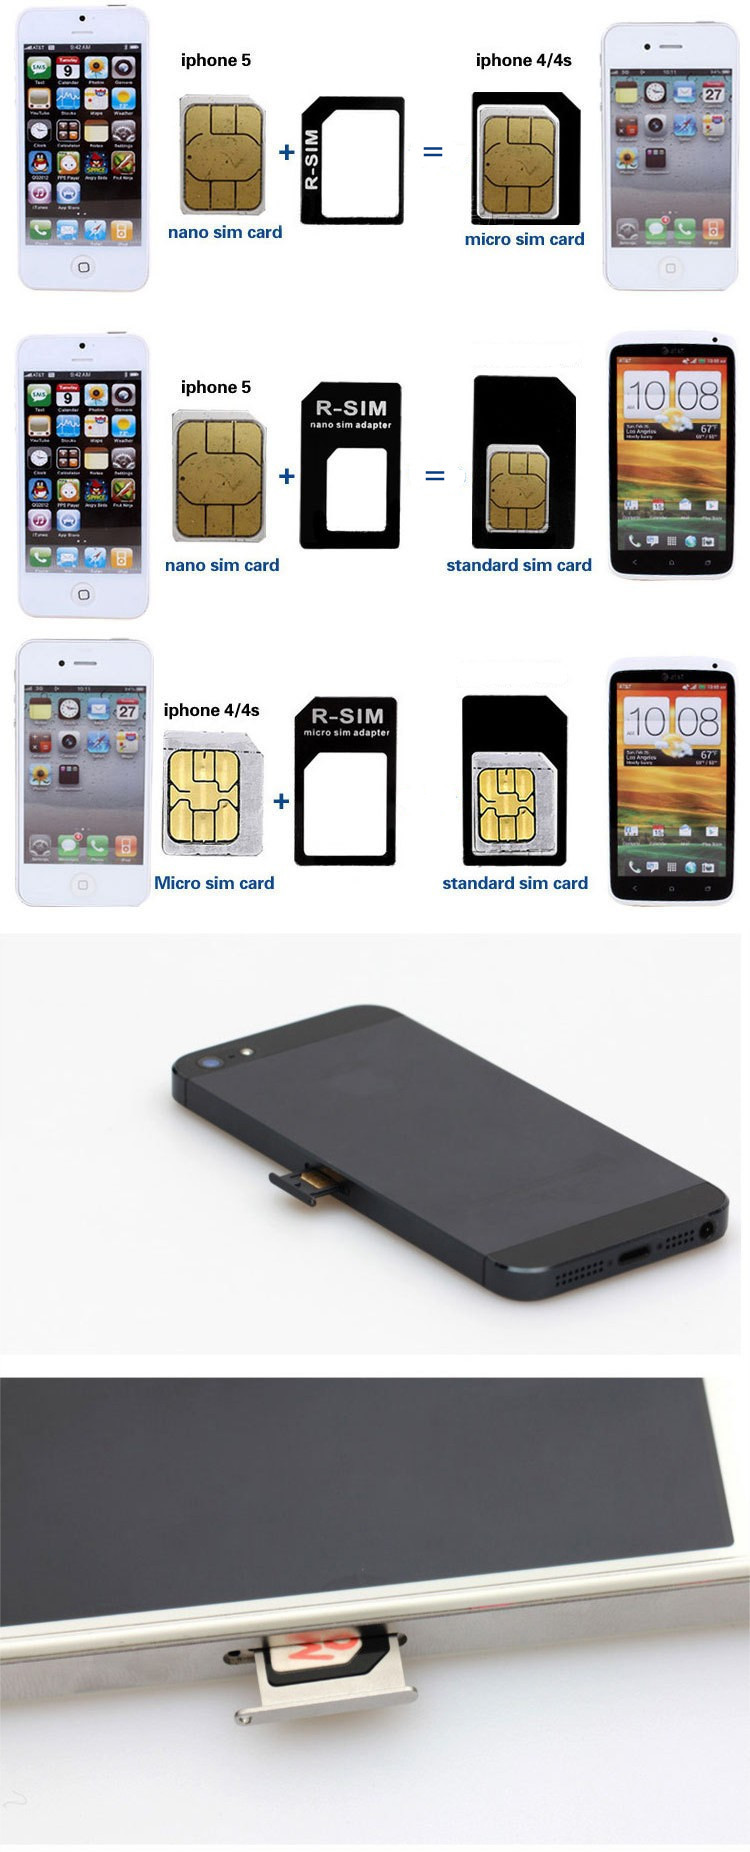 4-in-1-Nano-Micro-Standard-SIM-Card-Adaptor-Adapter-Adaptador-Eject-Pin-for-iPhone-4-4s-5-5s-5c-6-6-Plus-Samsung-Galaxy-S6-S5-S4 (2)